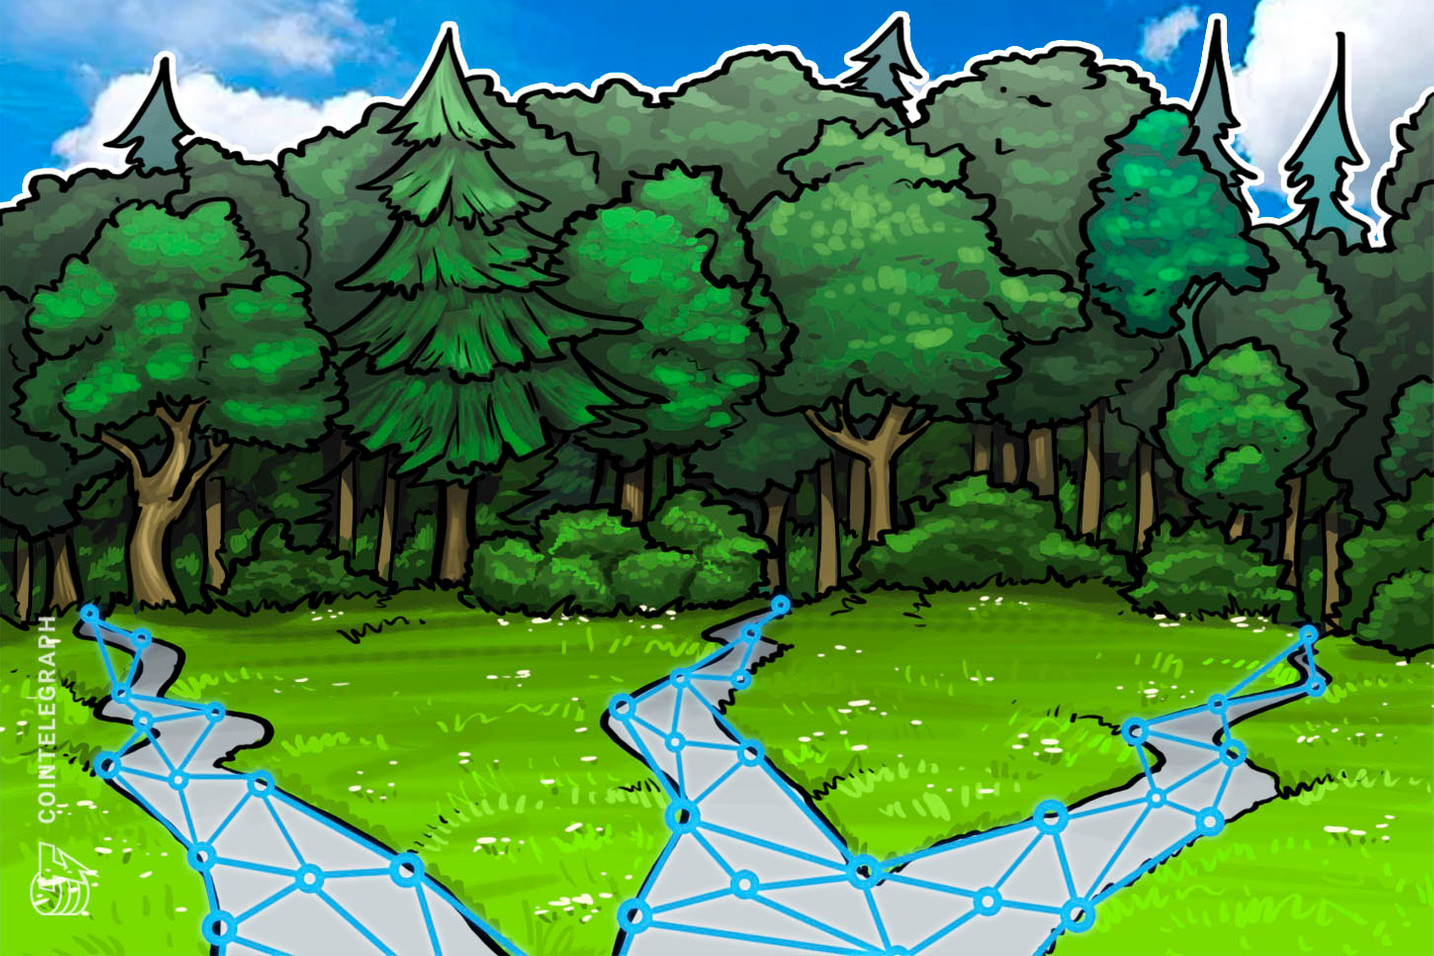 Chinese County Establishes Blockchain Company to Develop Forestry Industry